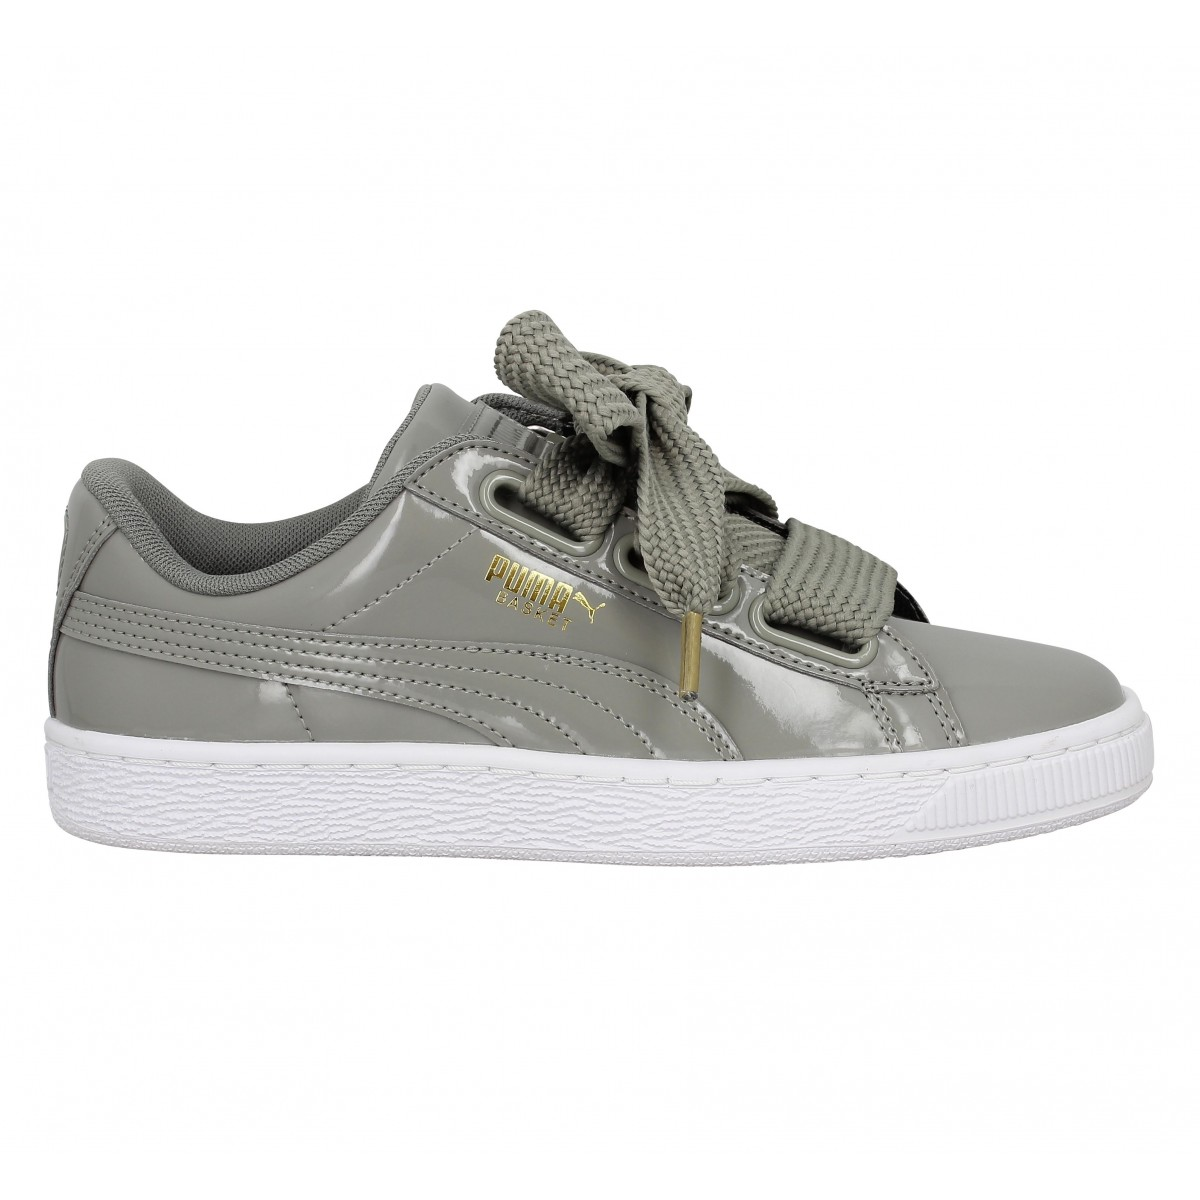 soldes chaussures puma basket heart patent femme rock femme fanny chaussures. Black Bedroom Furniture Sets. Home Design Ideas